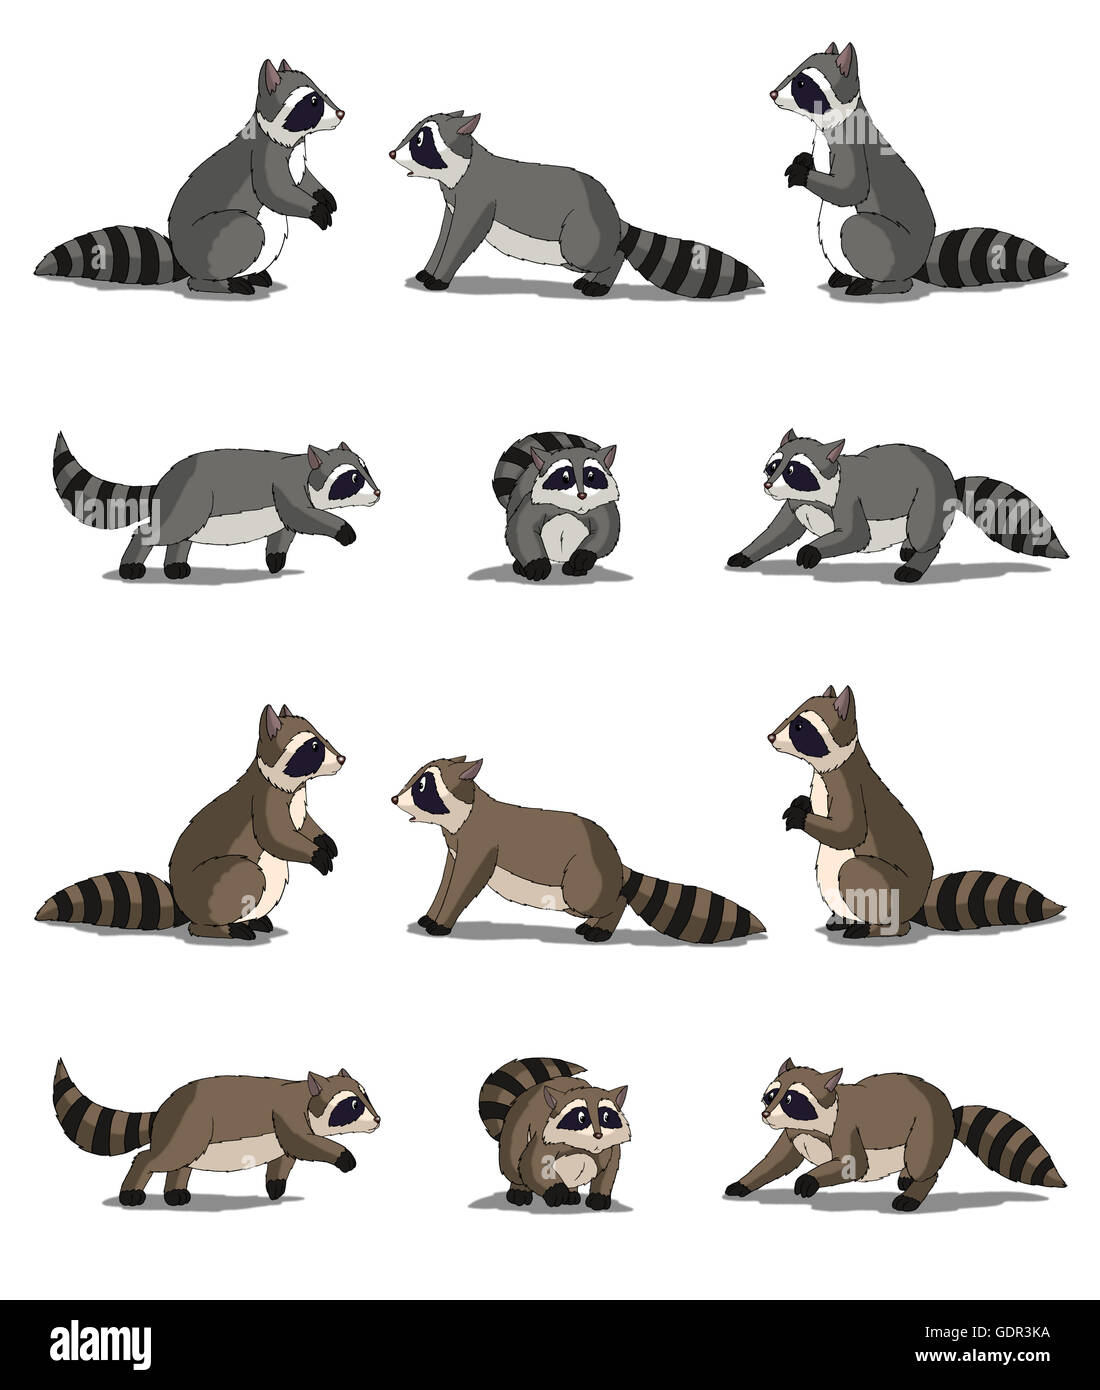 Set of Raccoon images Digital painting full color cartoon style